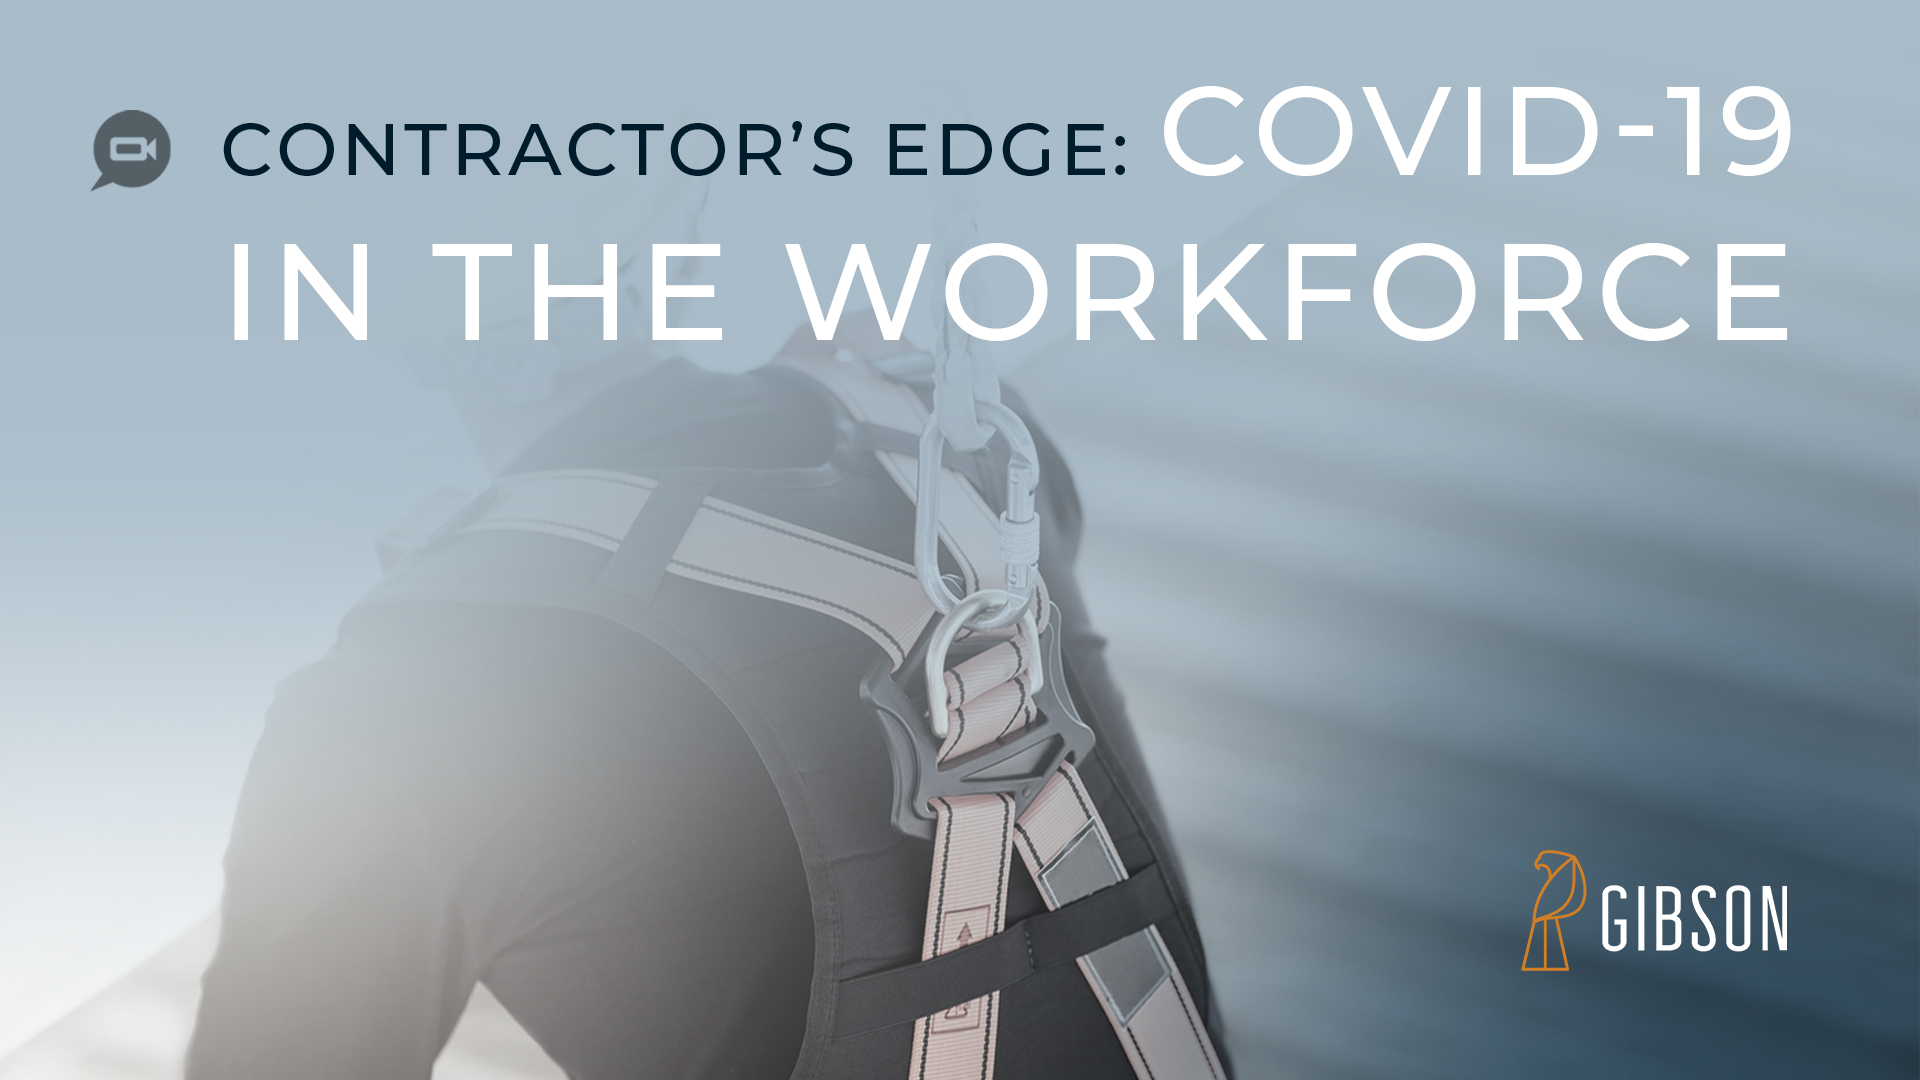 Contractors Edge COVID-19 in the Workforce